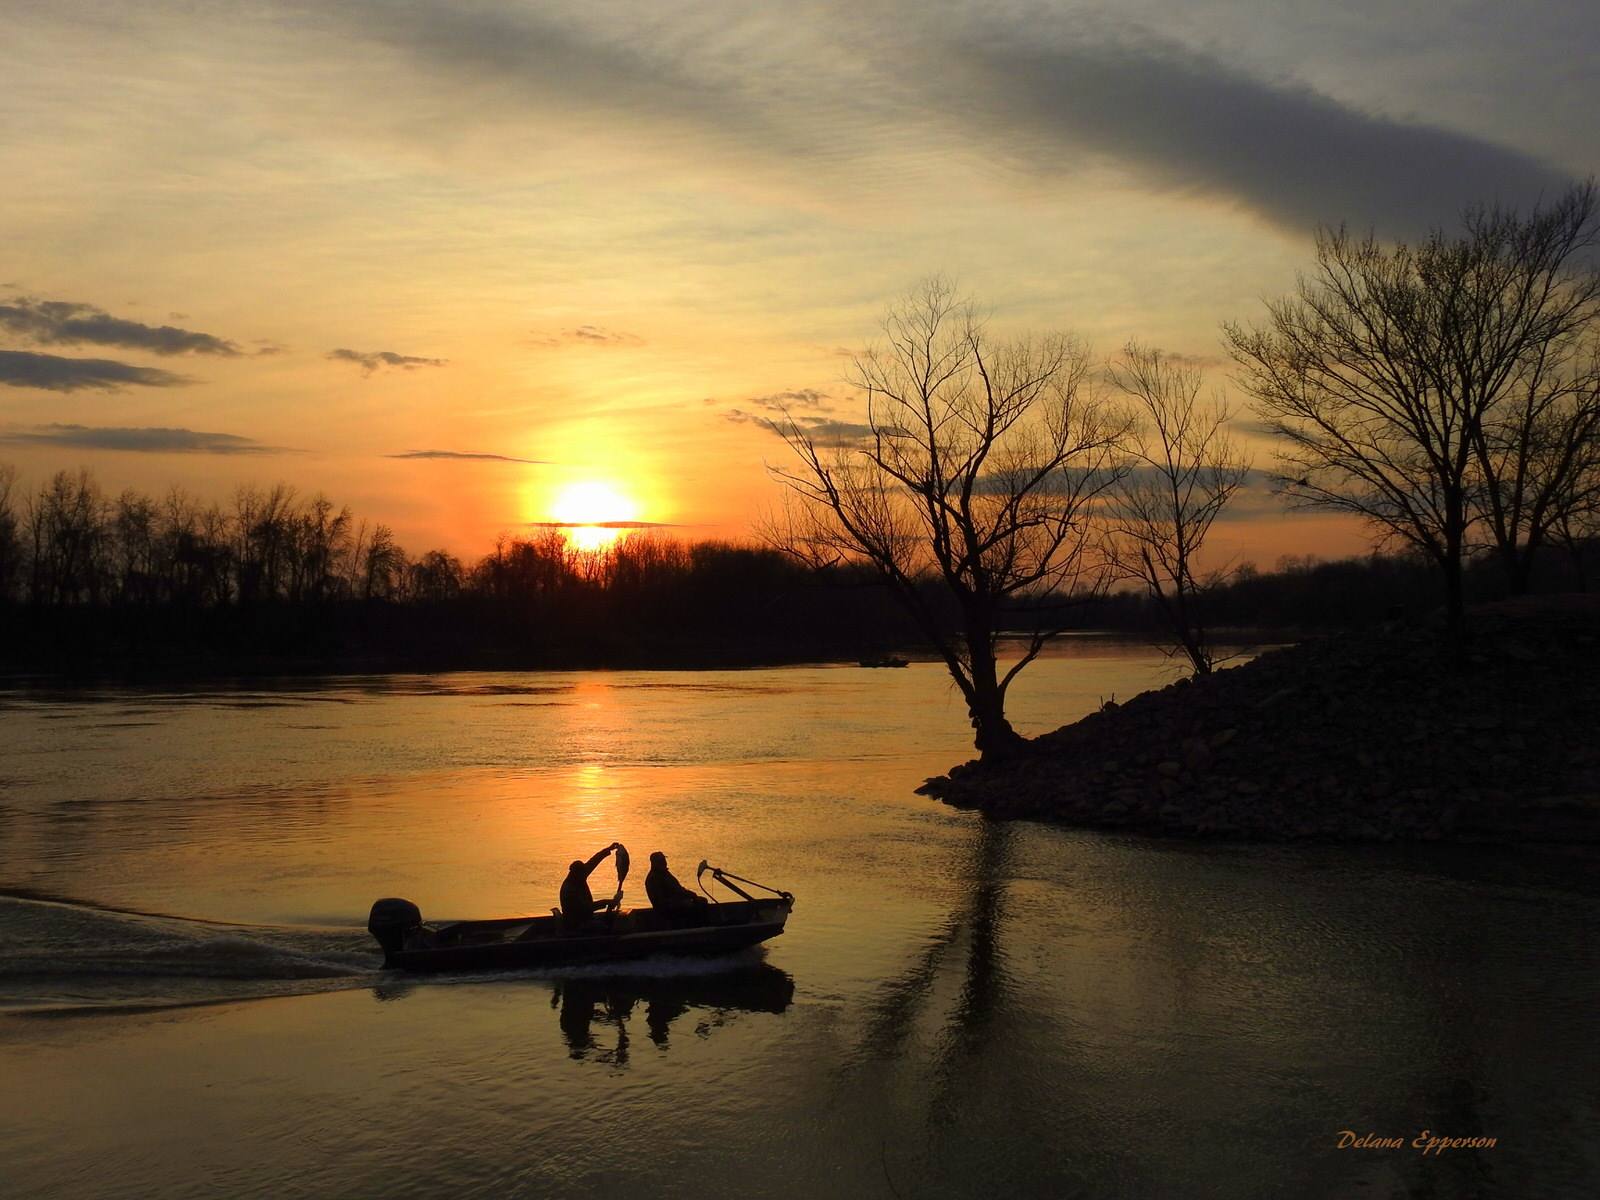 photo: White River Sunset at the Jacksonport State Park near Tunstall Riverwalk Trail. Photo by Delana Epperson.